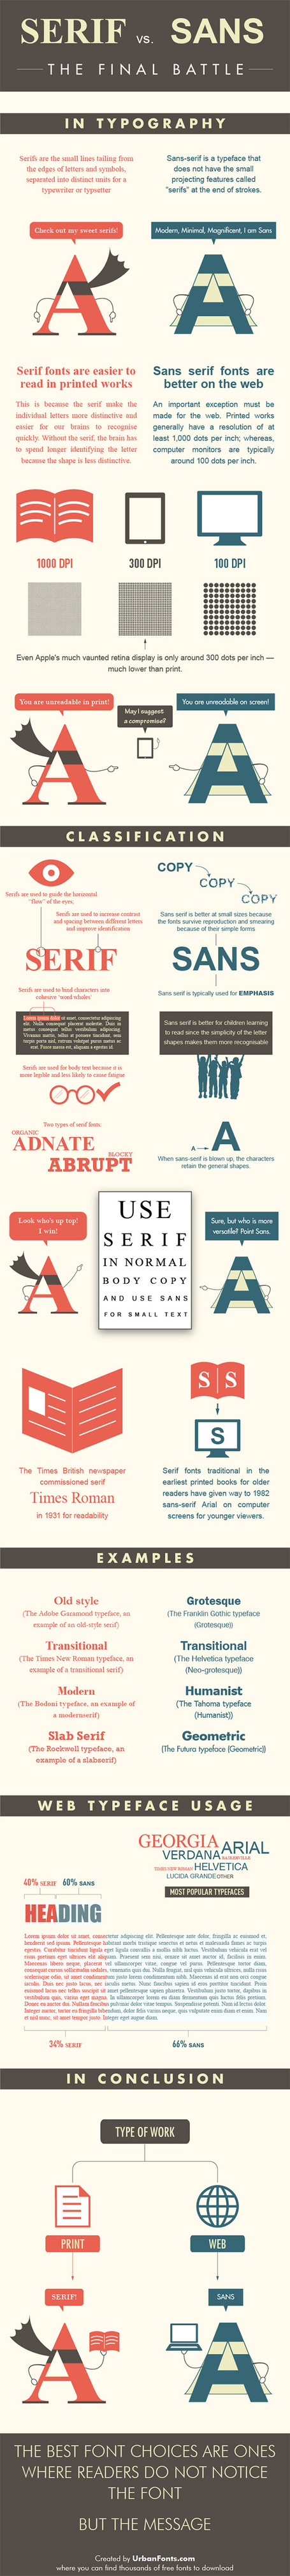 Serif vs Sans: The Final Battle In Typography [Infographic] | visual data | Scoop.it